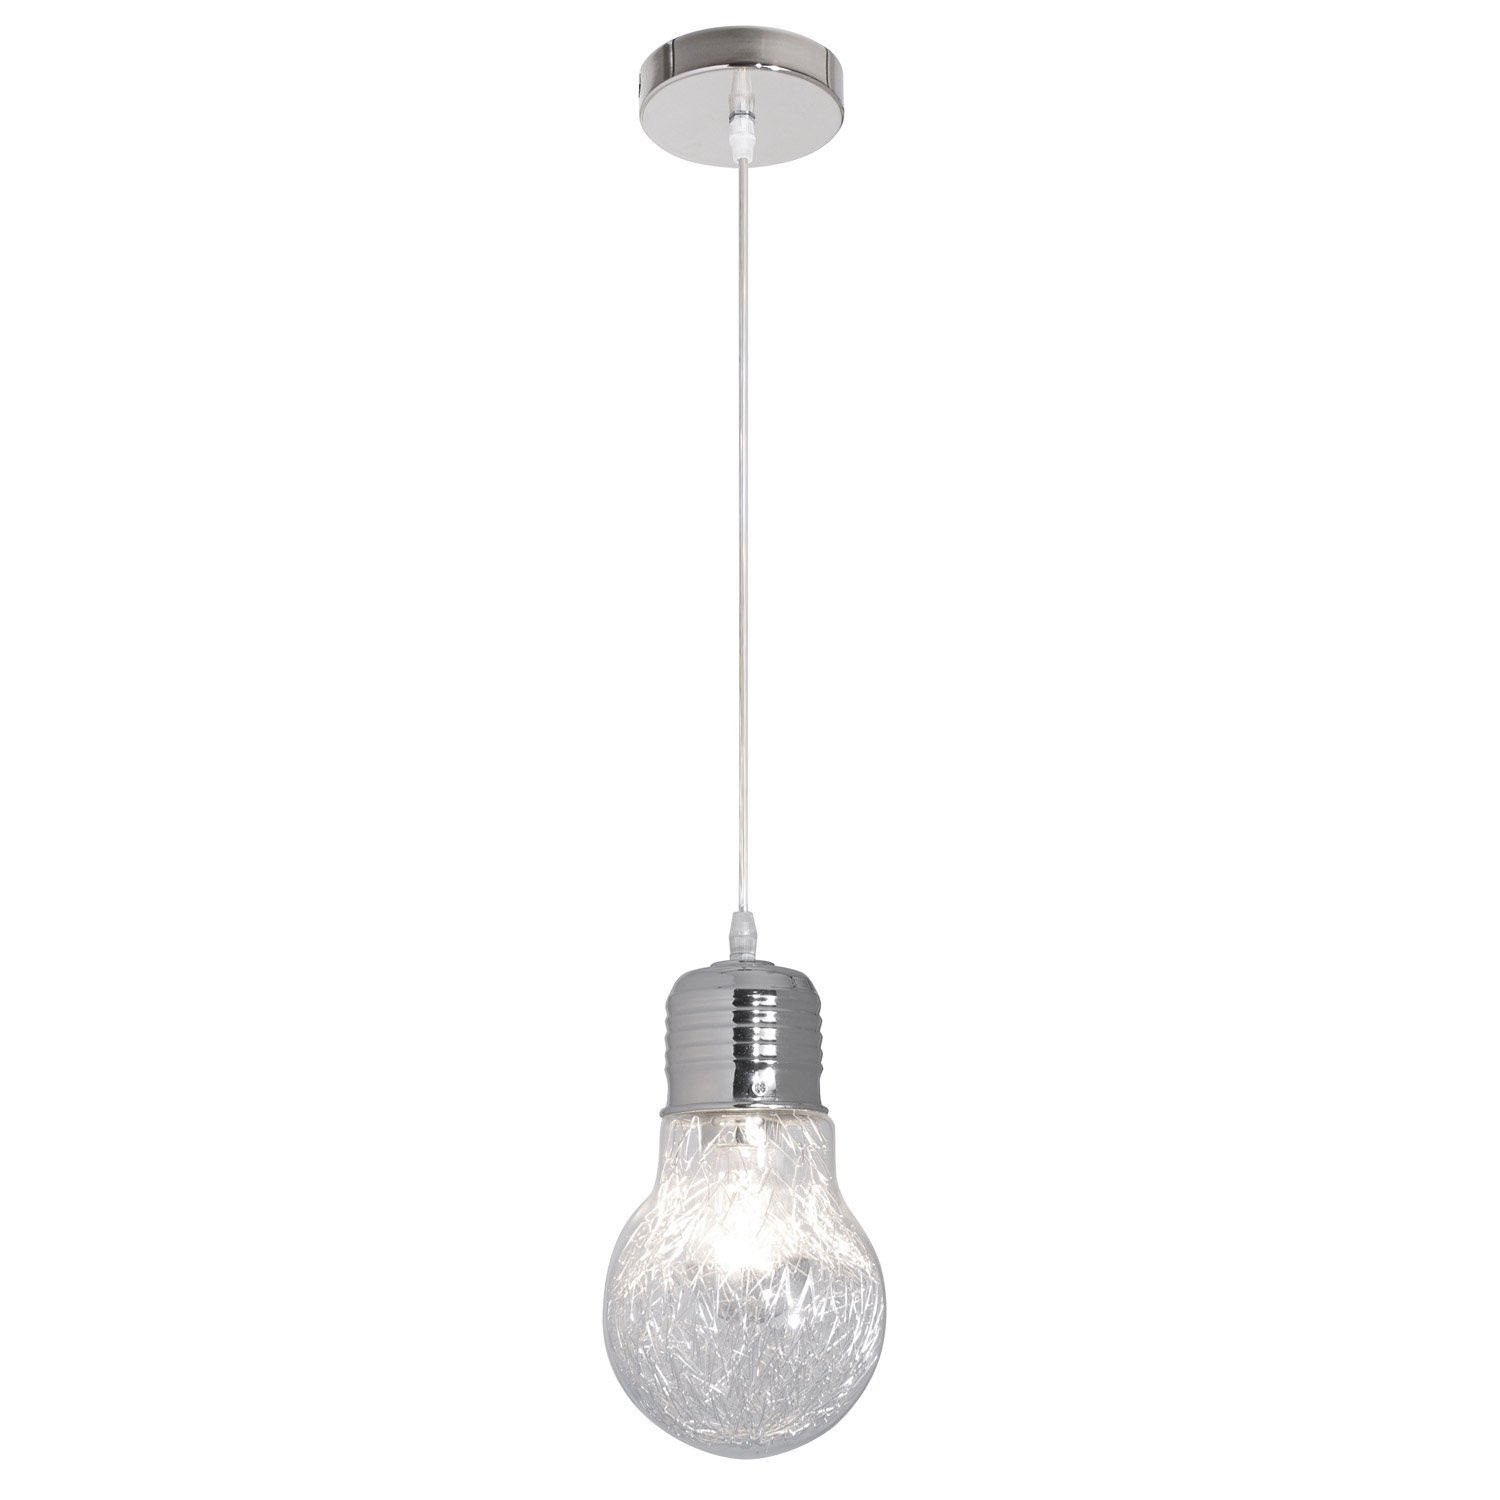 Suspension luminaire 1 ampoule